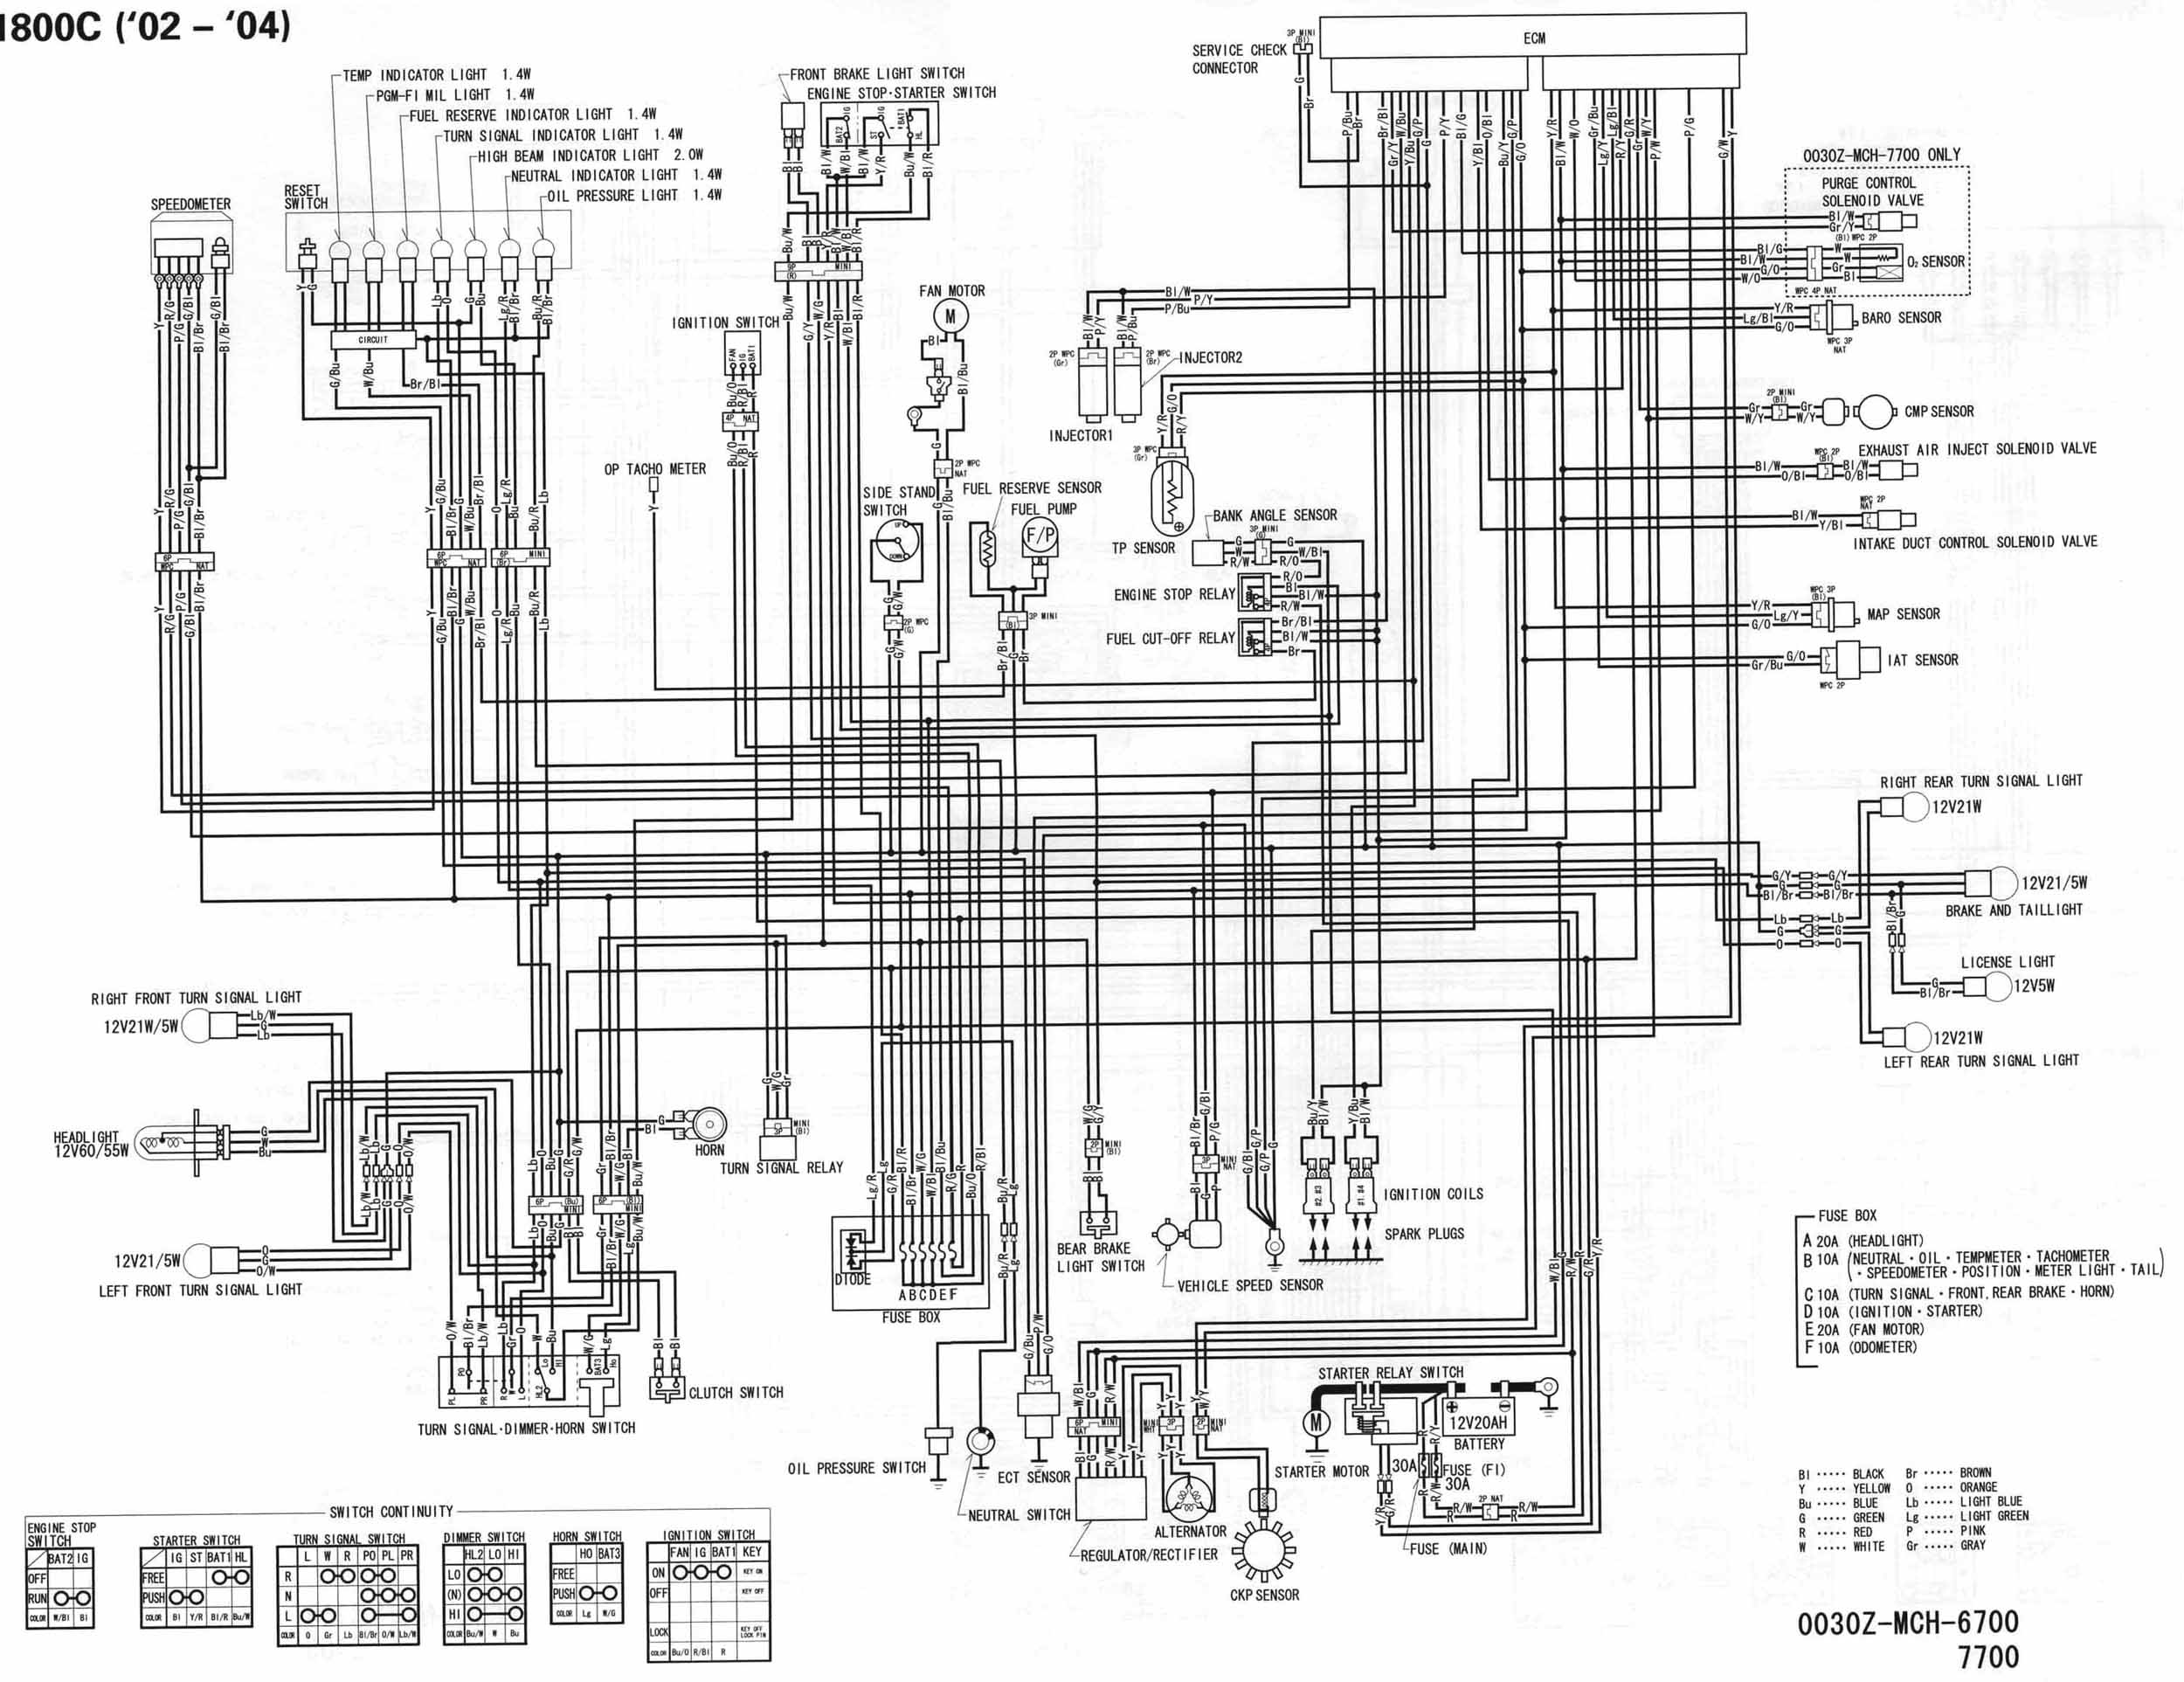 motorcycle wire schematics bareass choppers motorcycle tech pages rh tech bareasschoppers com 2007 honda vtx 1800 wiring diagram 2006 honda vtx 1800 wiring diagram